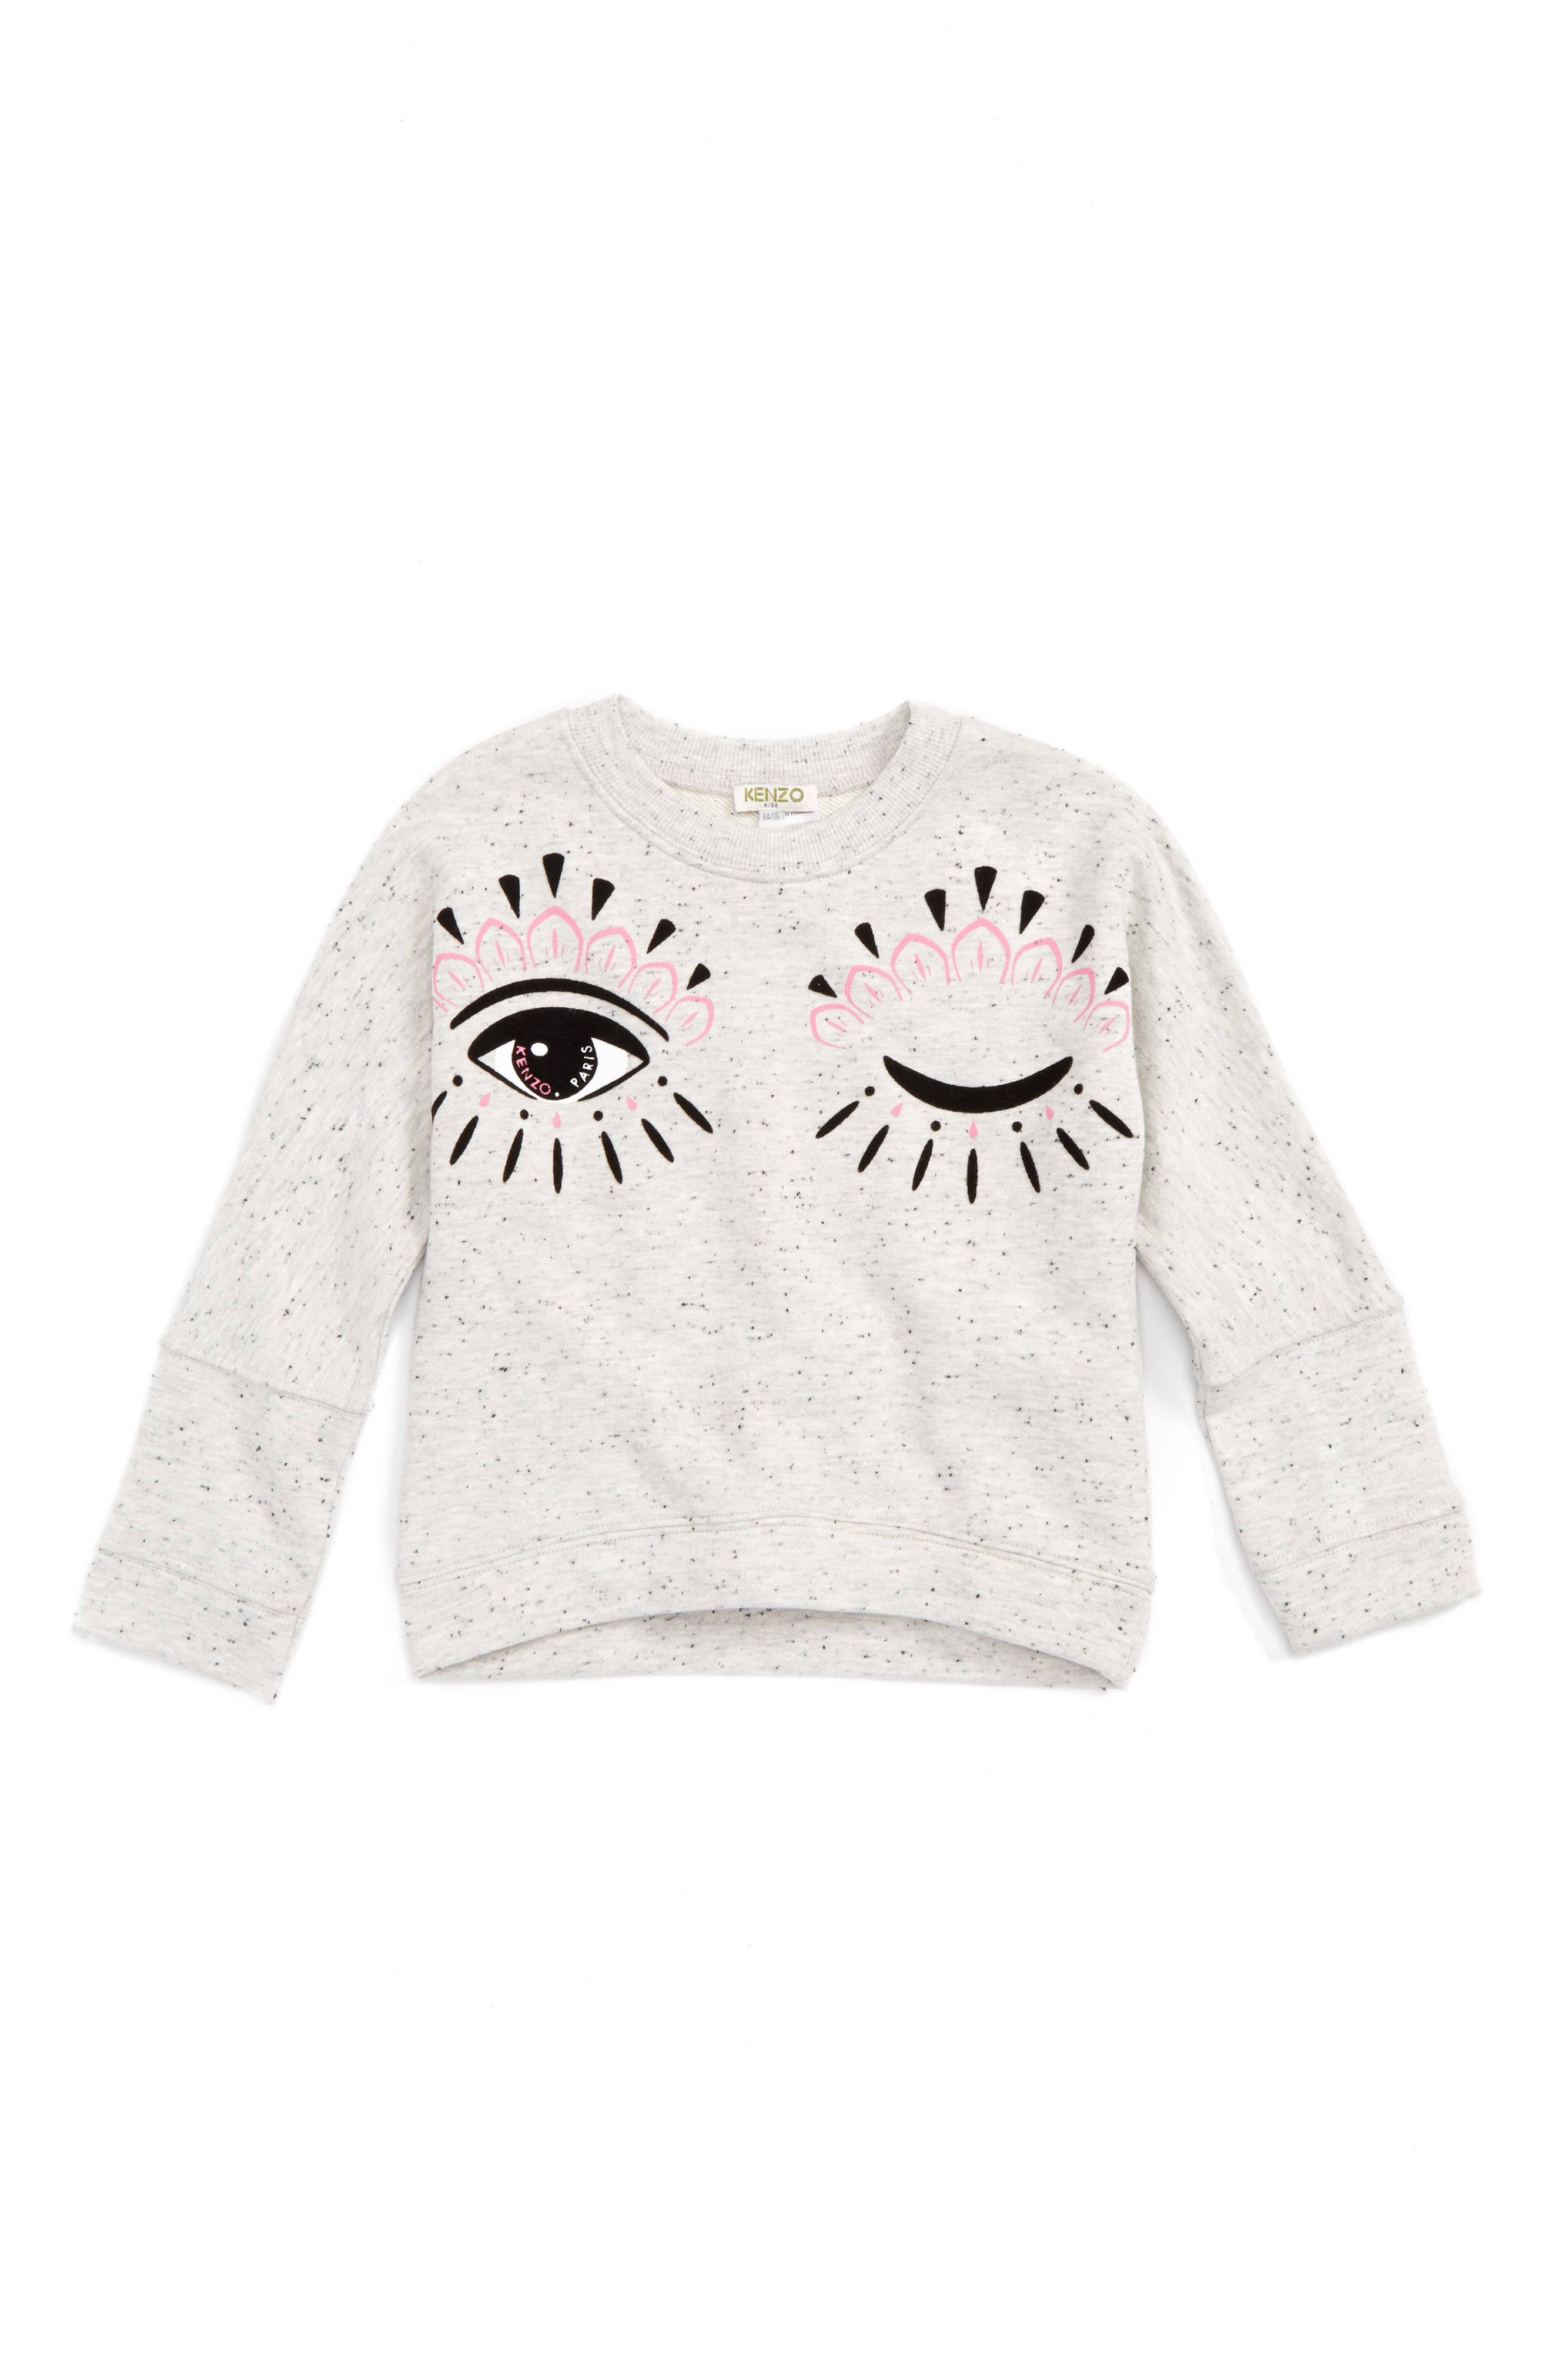 Main Image - KENZO Blinking Eye Sweatshirt (Toddler Girls, Little Girls & Big Girls)